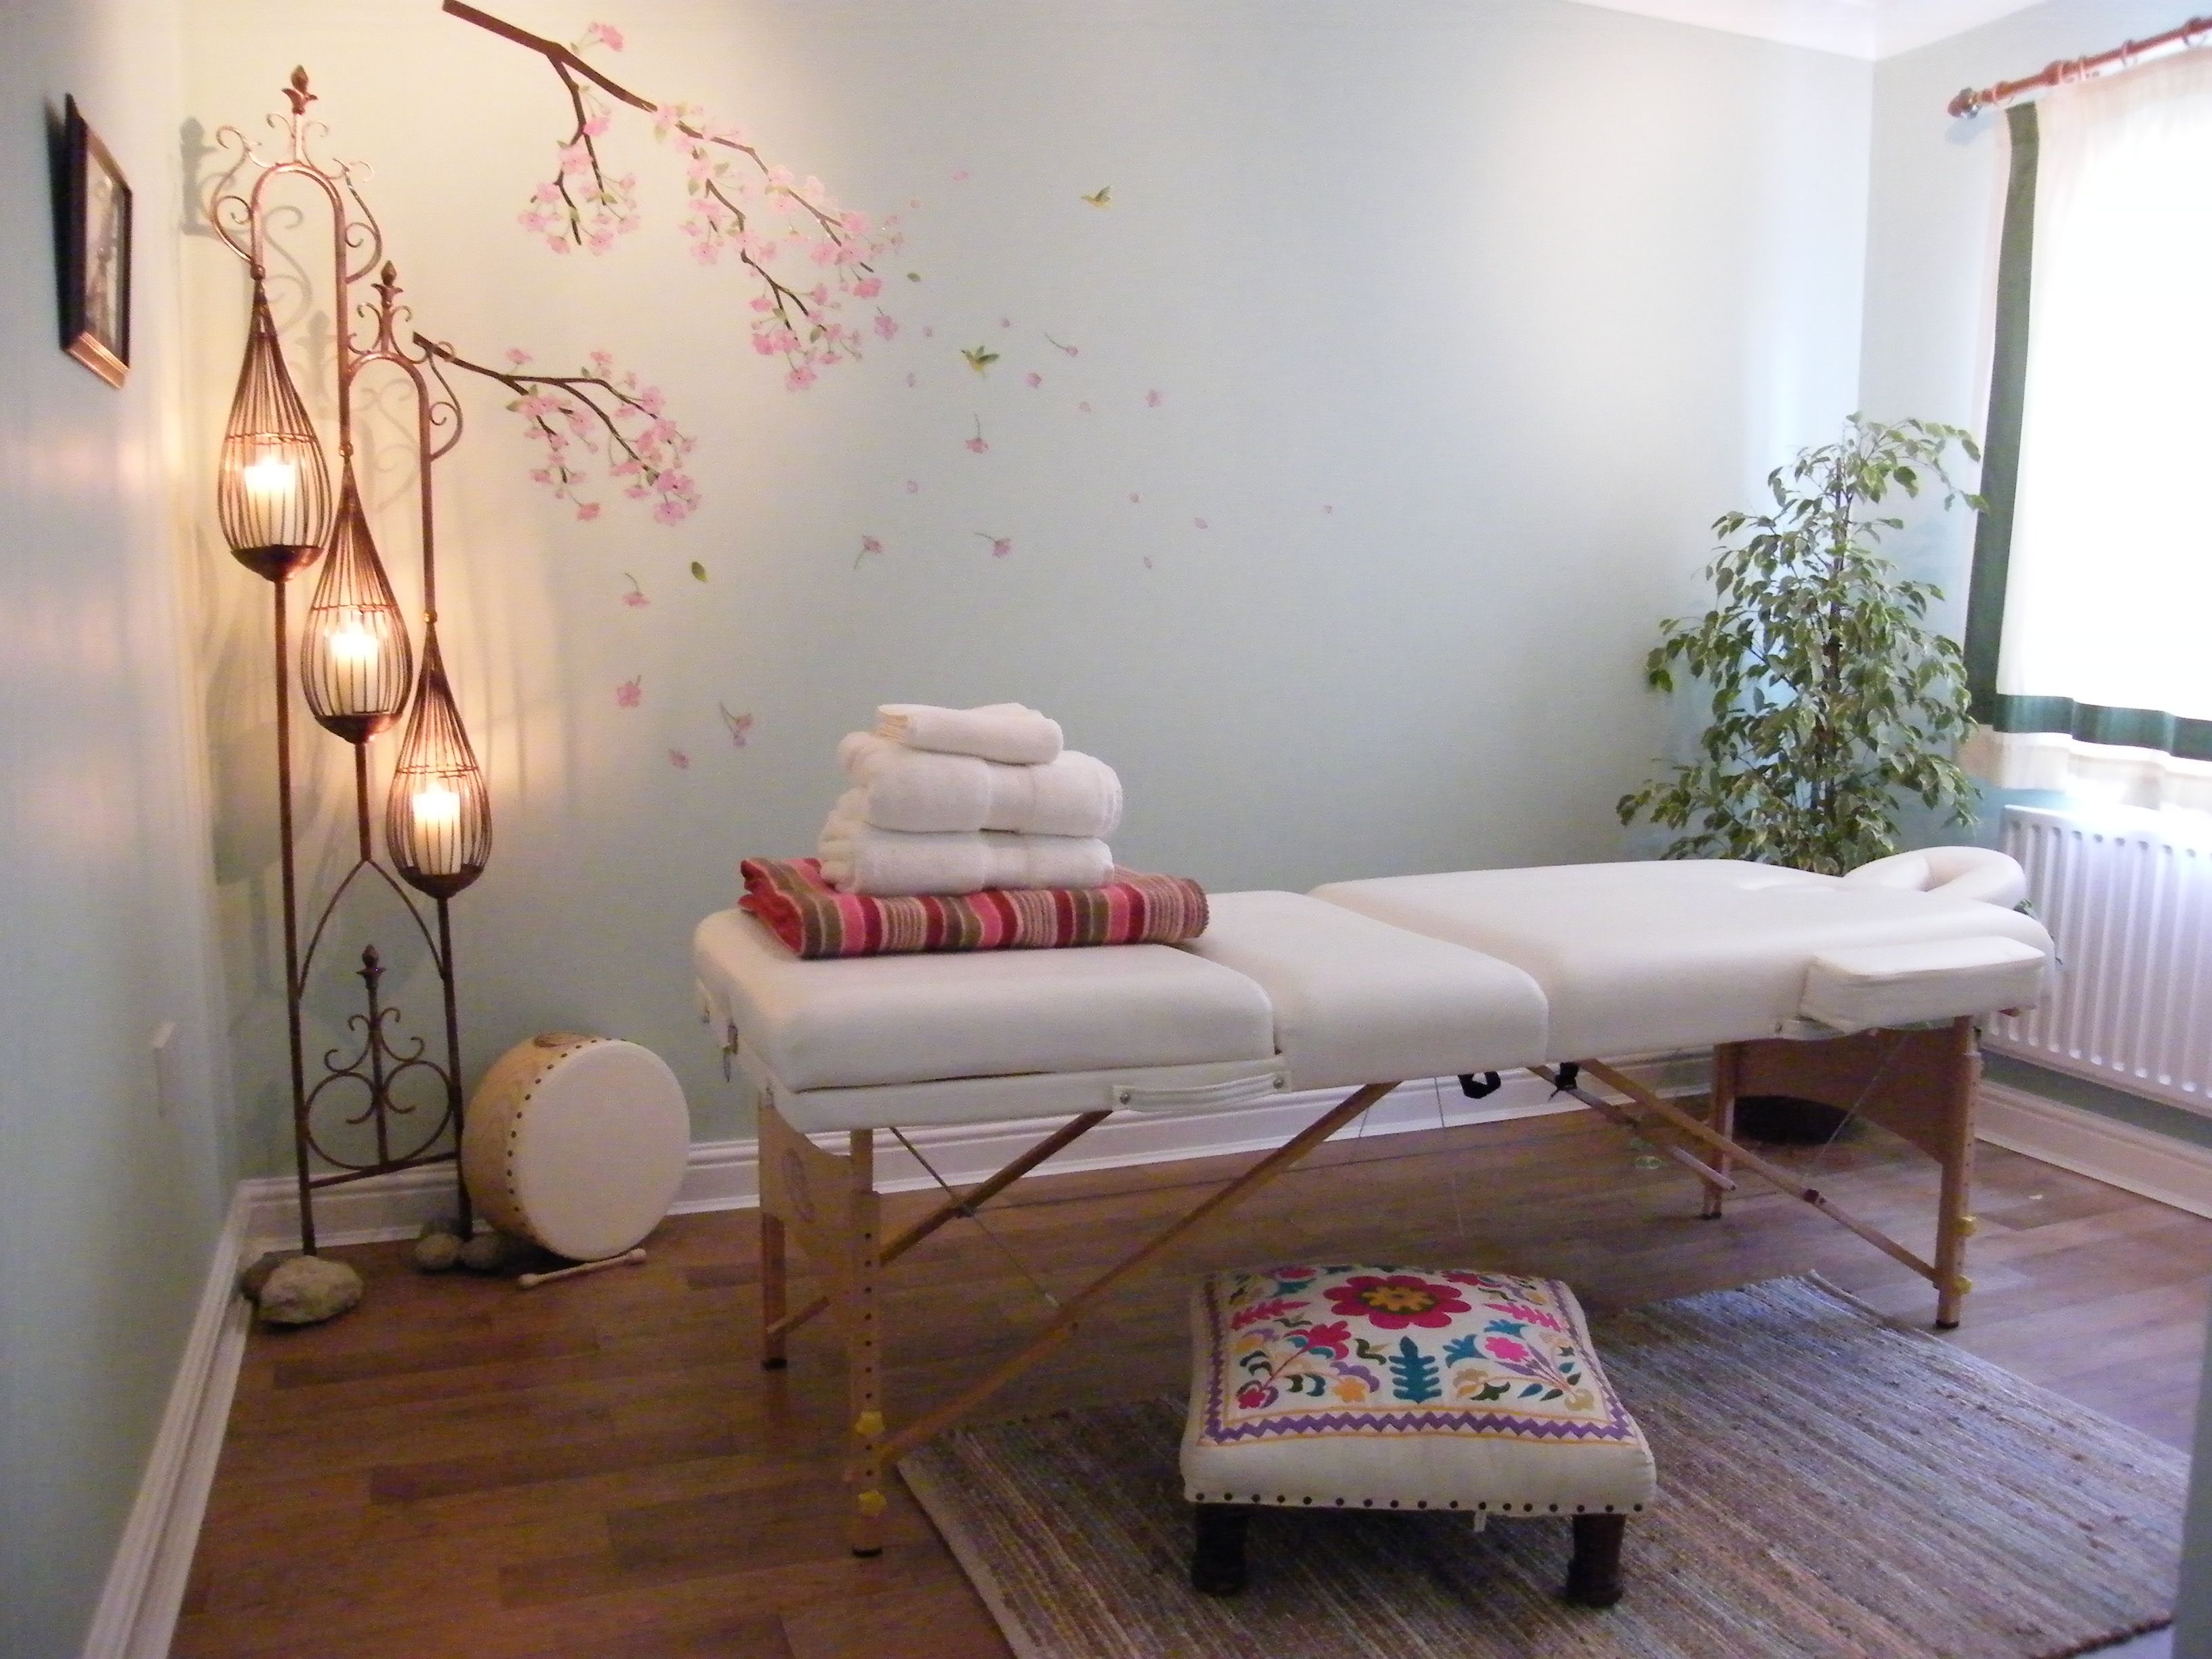 Home Spa Design Ideas: Reiki And Swedish Massage Therapy Room